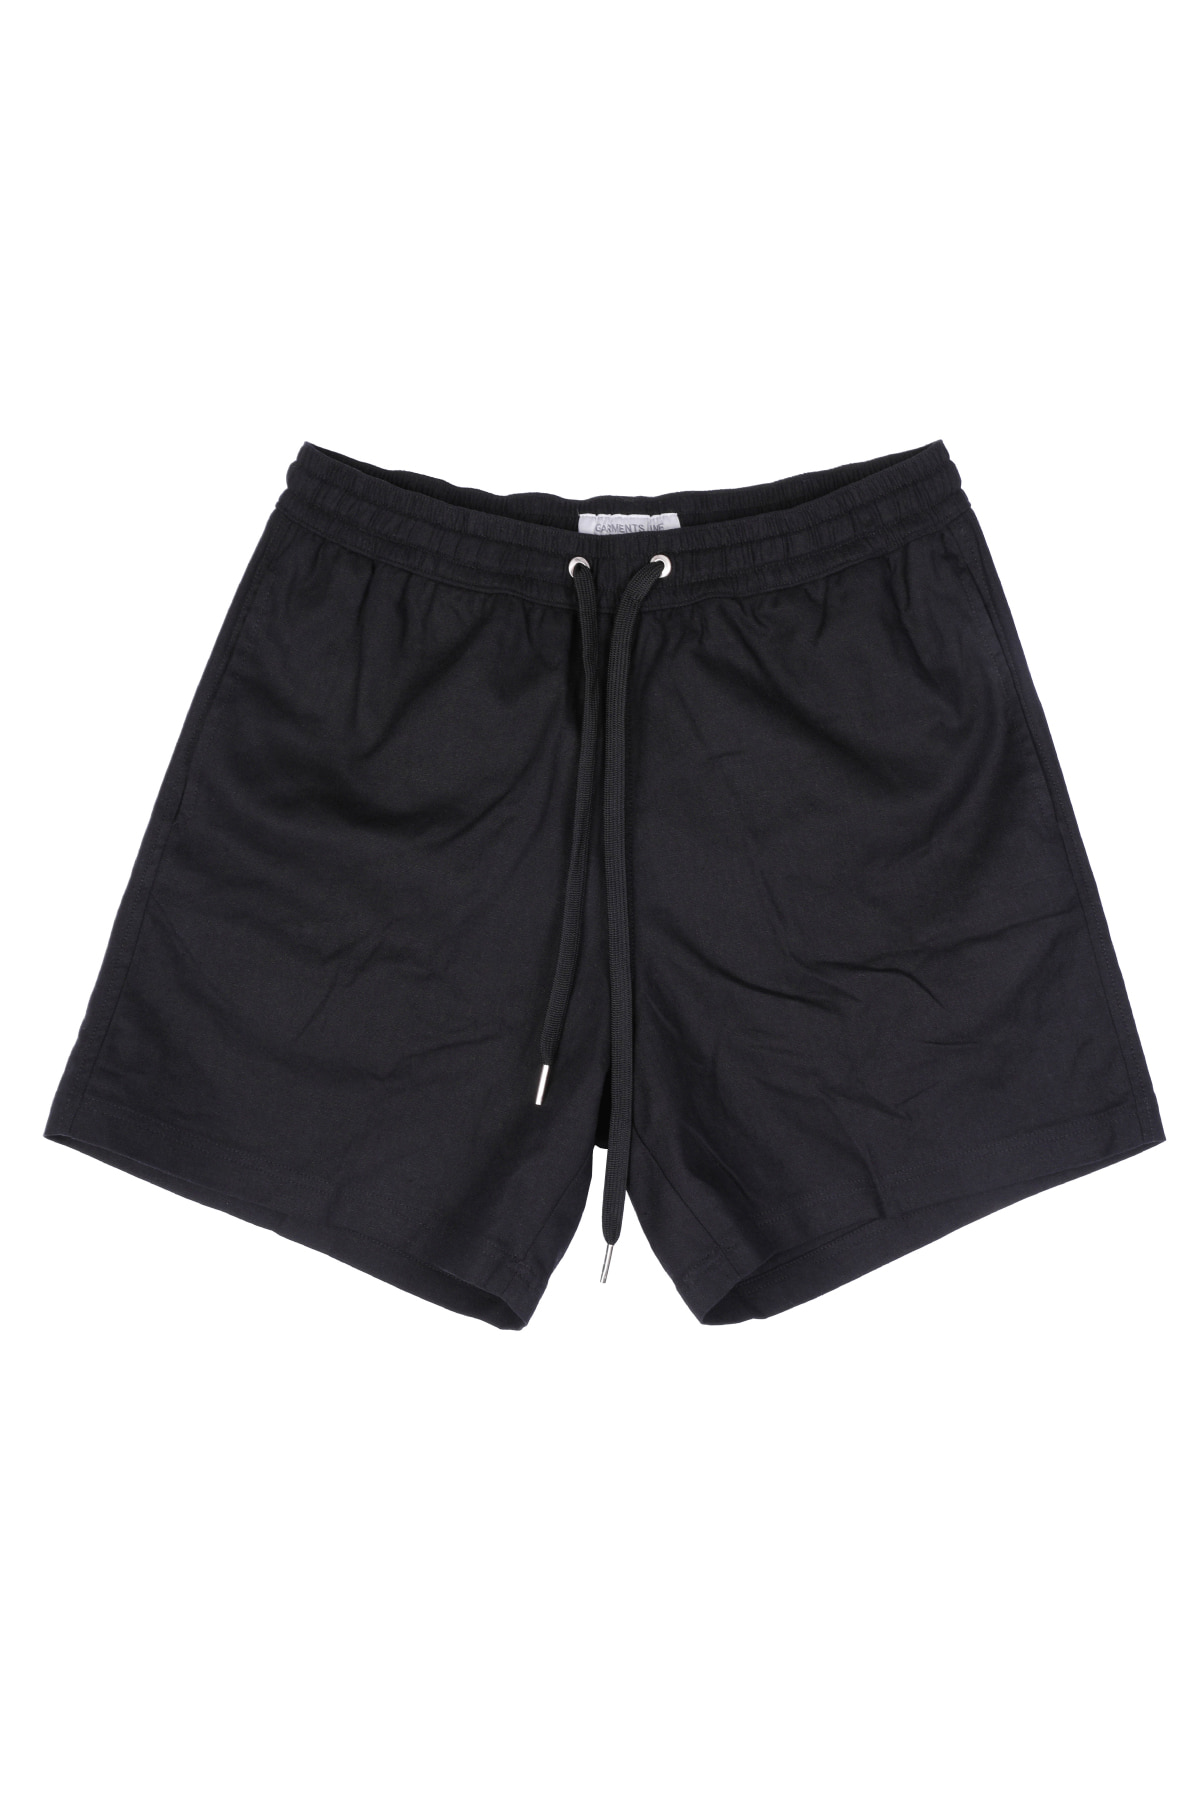 #G005 Linen short pants  (black)